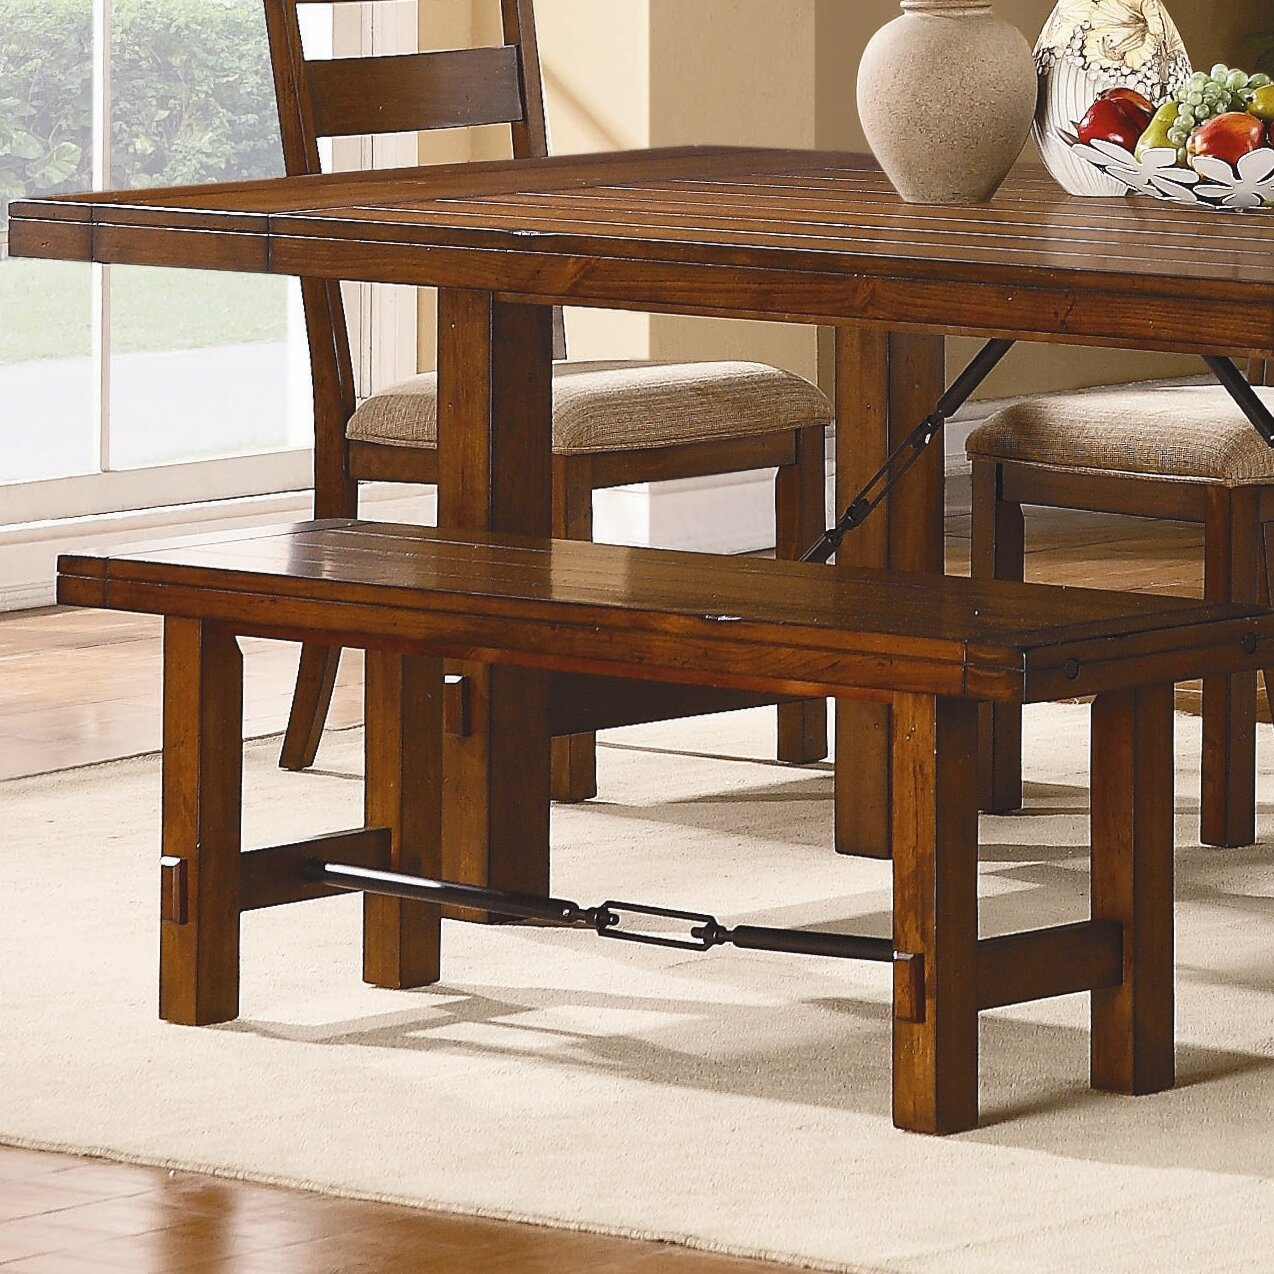 Loon Peak South Bross Wooden Kitchen Bench & Reviews